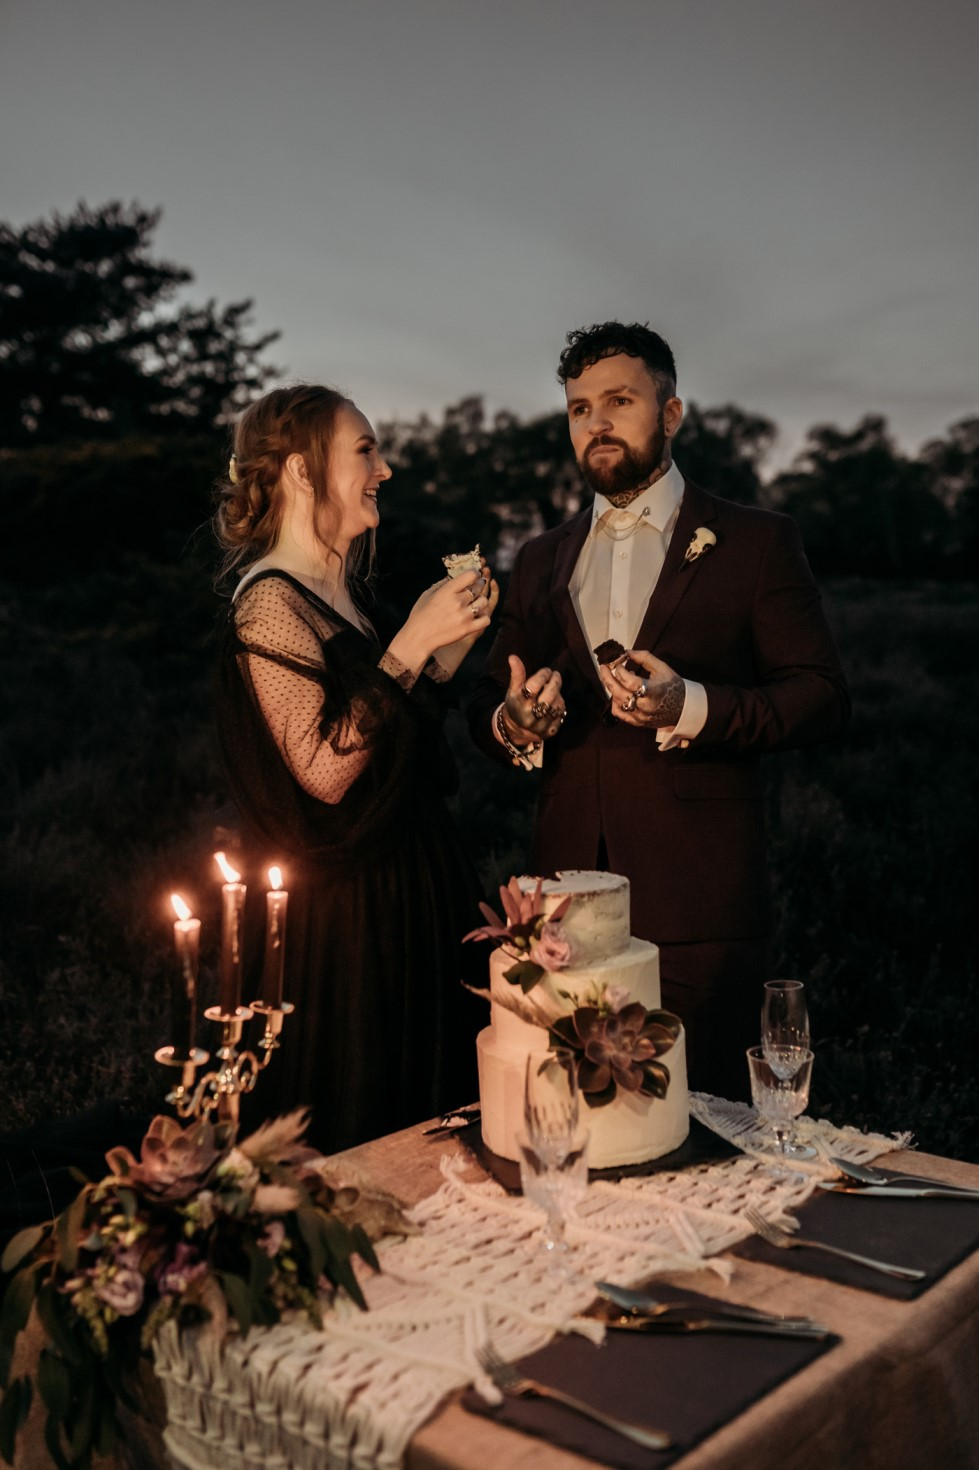 Finn And The Fox Photography-Moody Elopement Wedding- Gothic wedding inspiration - black wedding dress - gothic wedding accessories